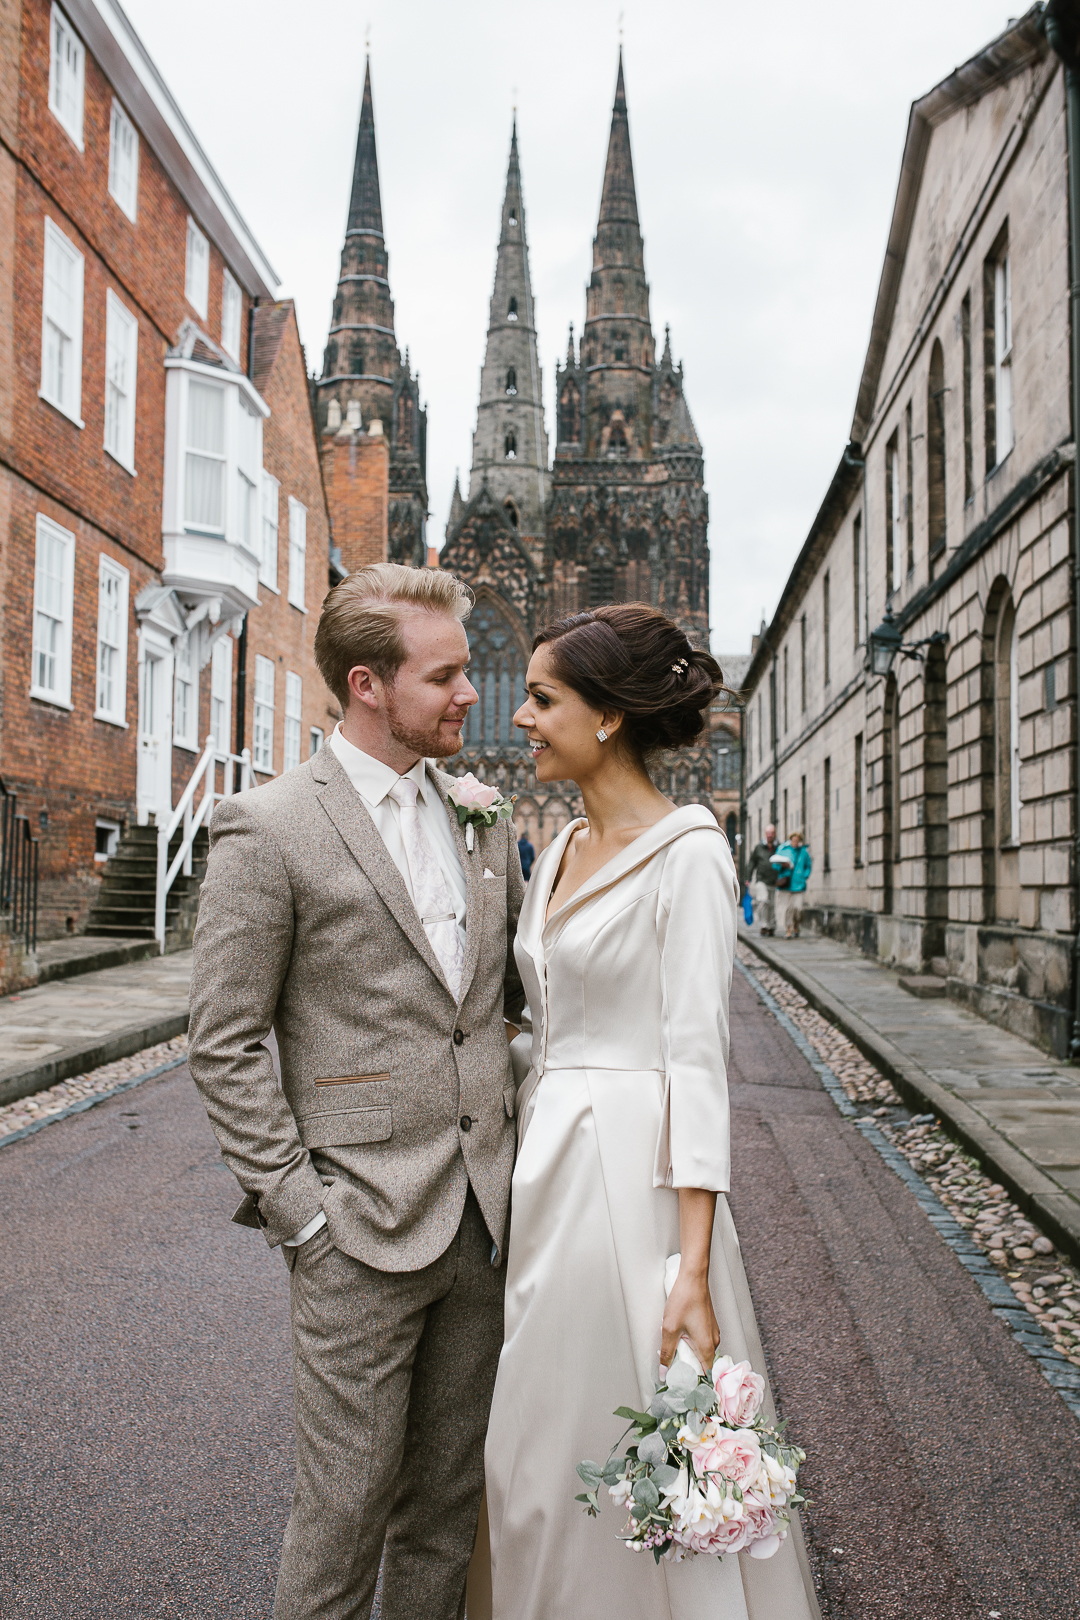 Lichfield Wedding, Lichfield Cathedral, Lichfield wedding photographer, staffordshire wedding photographer-99.jpg